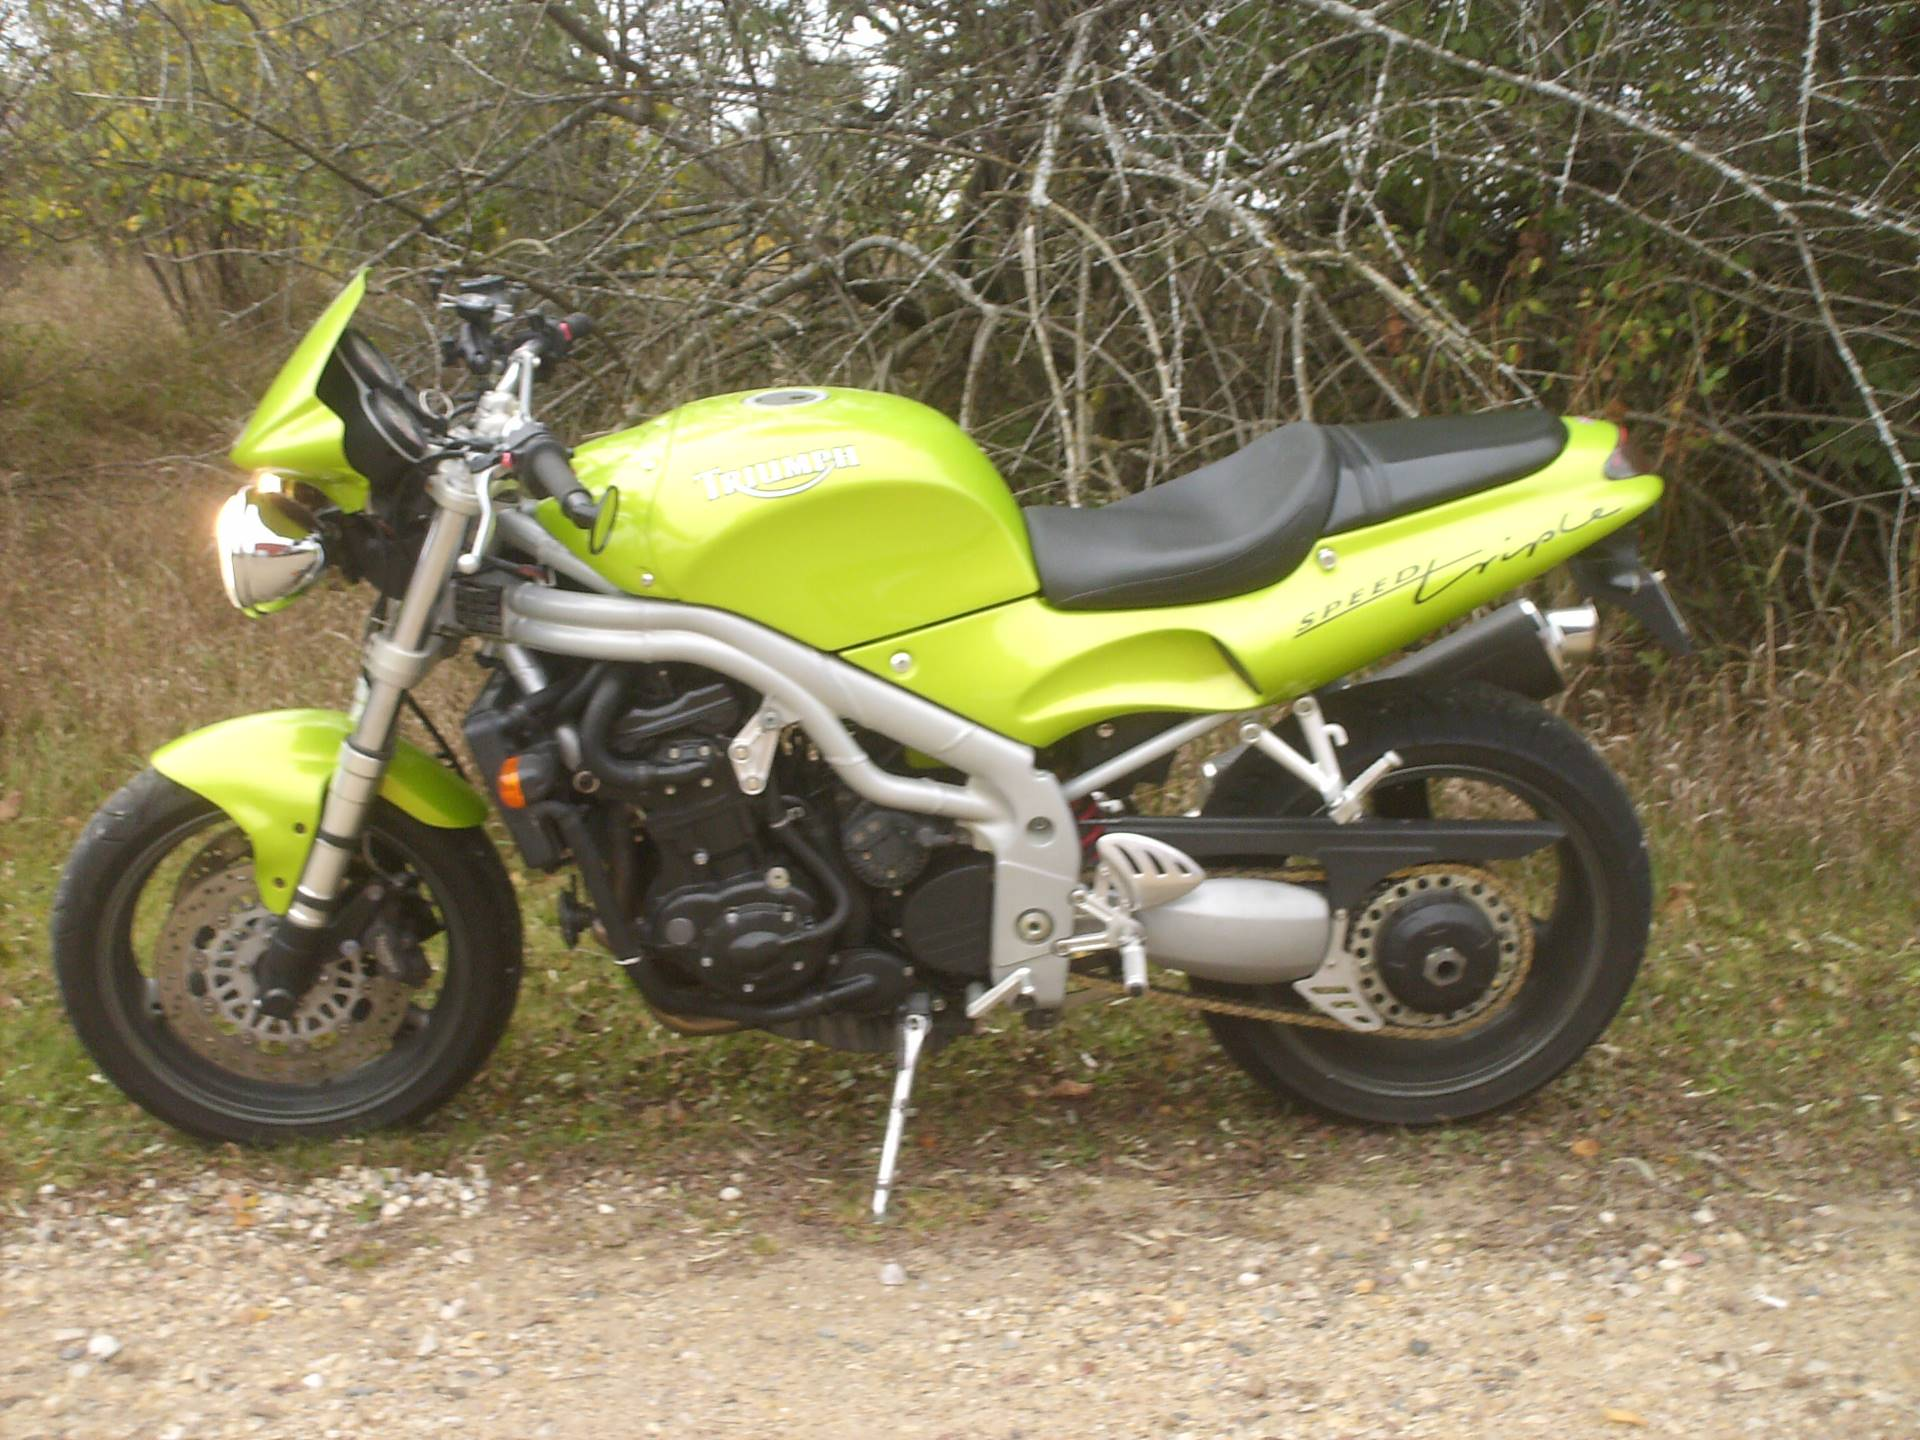 1999 Triumph Speed Triple in Mukwonago, Wisconsin